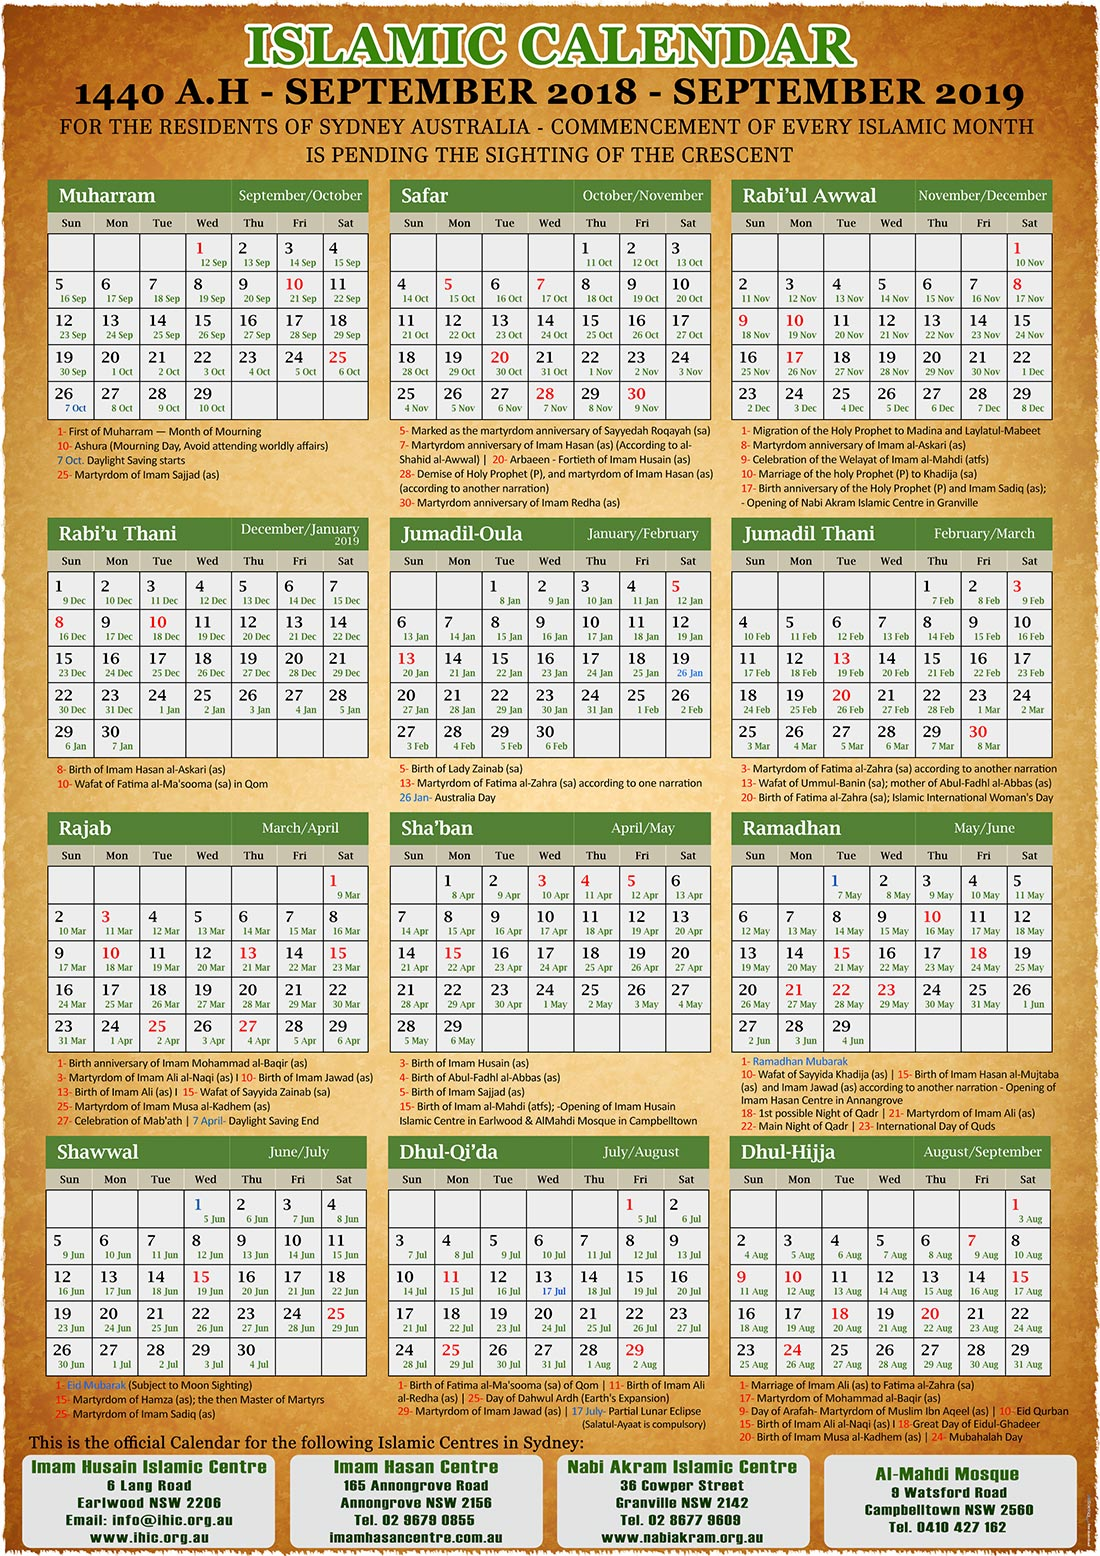 Islamic New Year 2019 Calendar With Annual 1440 A H Imam Husain Centre